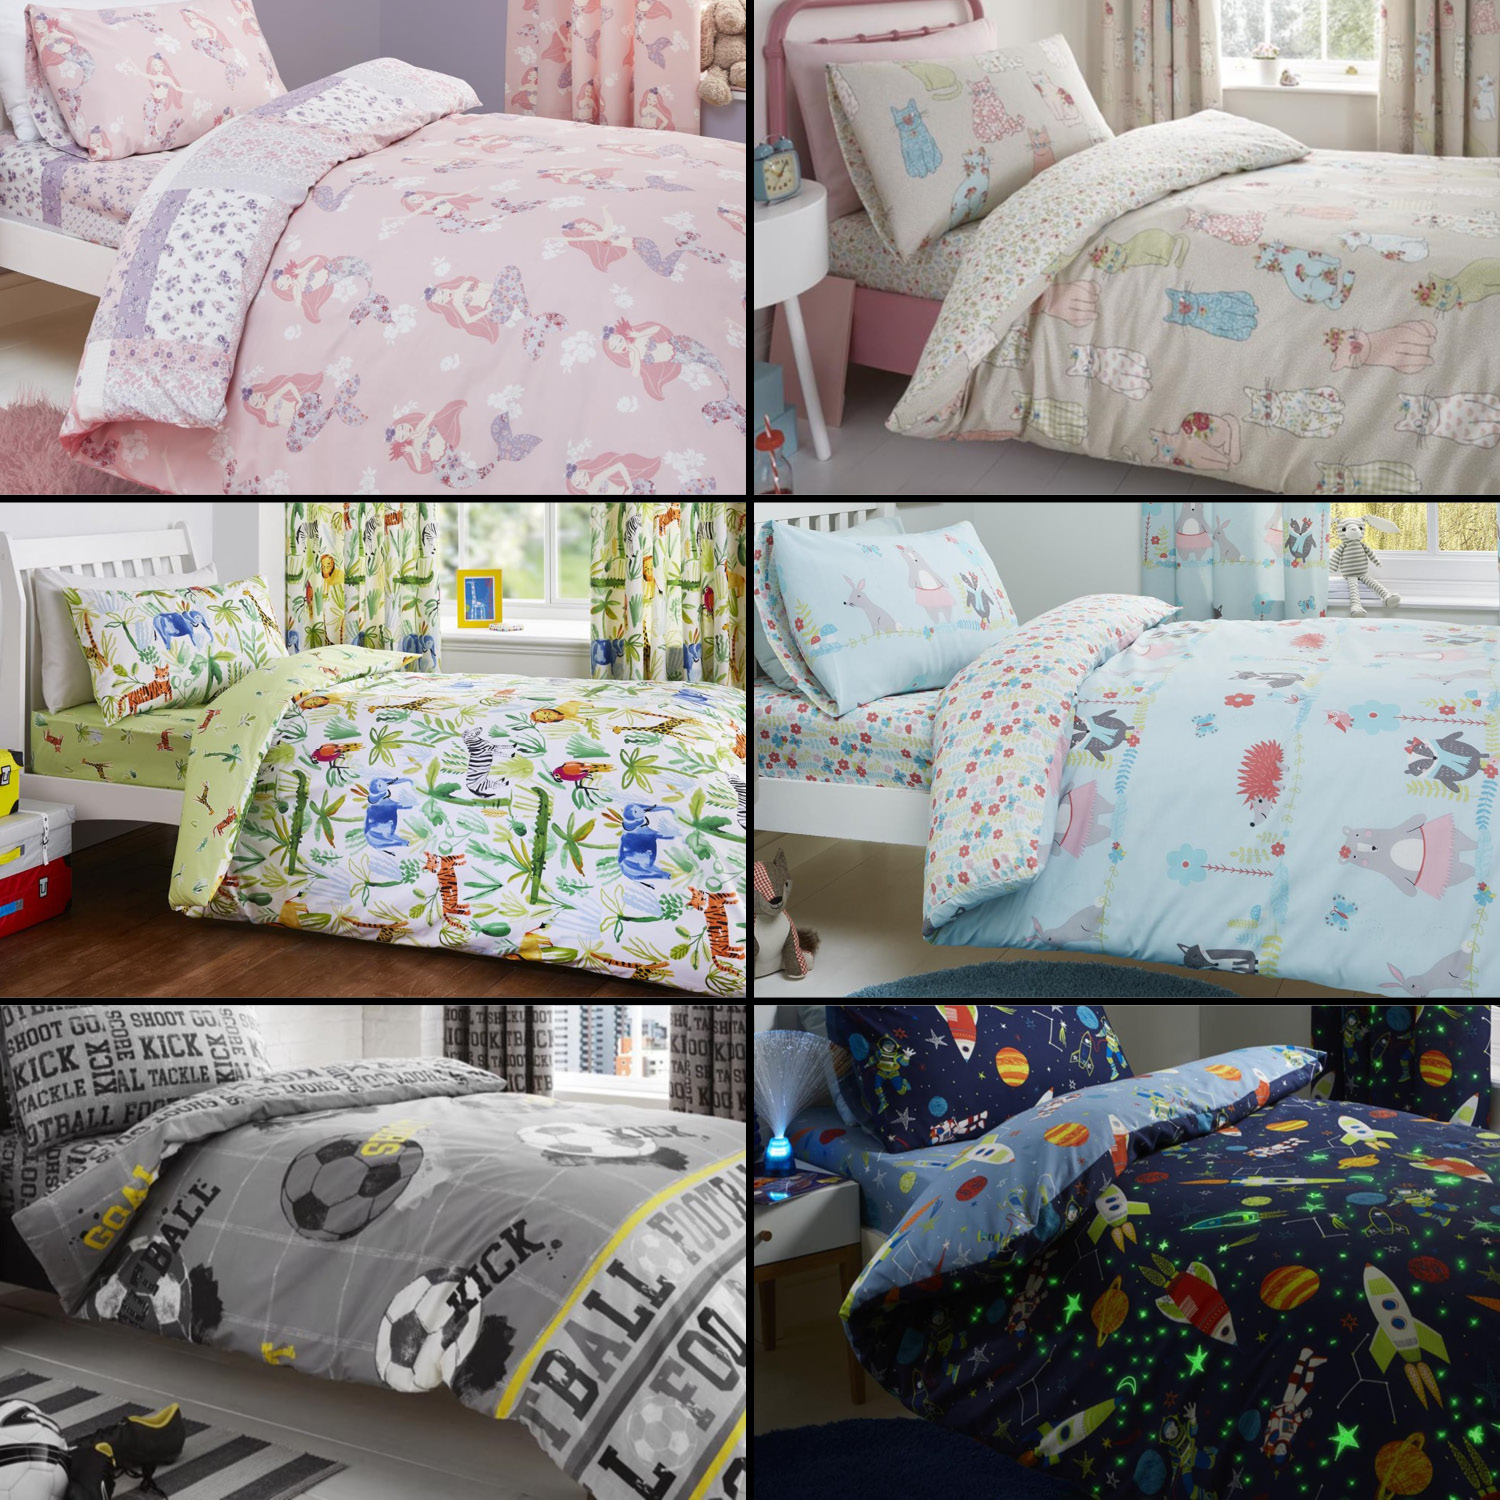 Kids Duvet Cover Set Curtains Fitted Sheet Space Jungle Safari Mermaid Cats Ebay